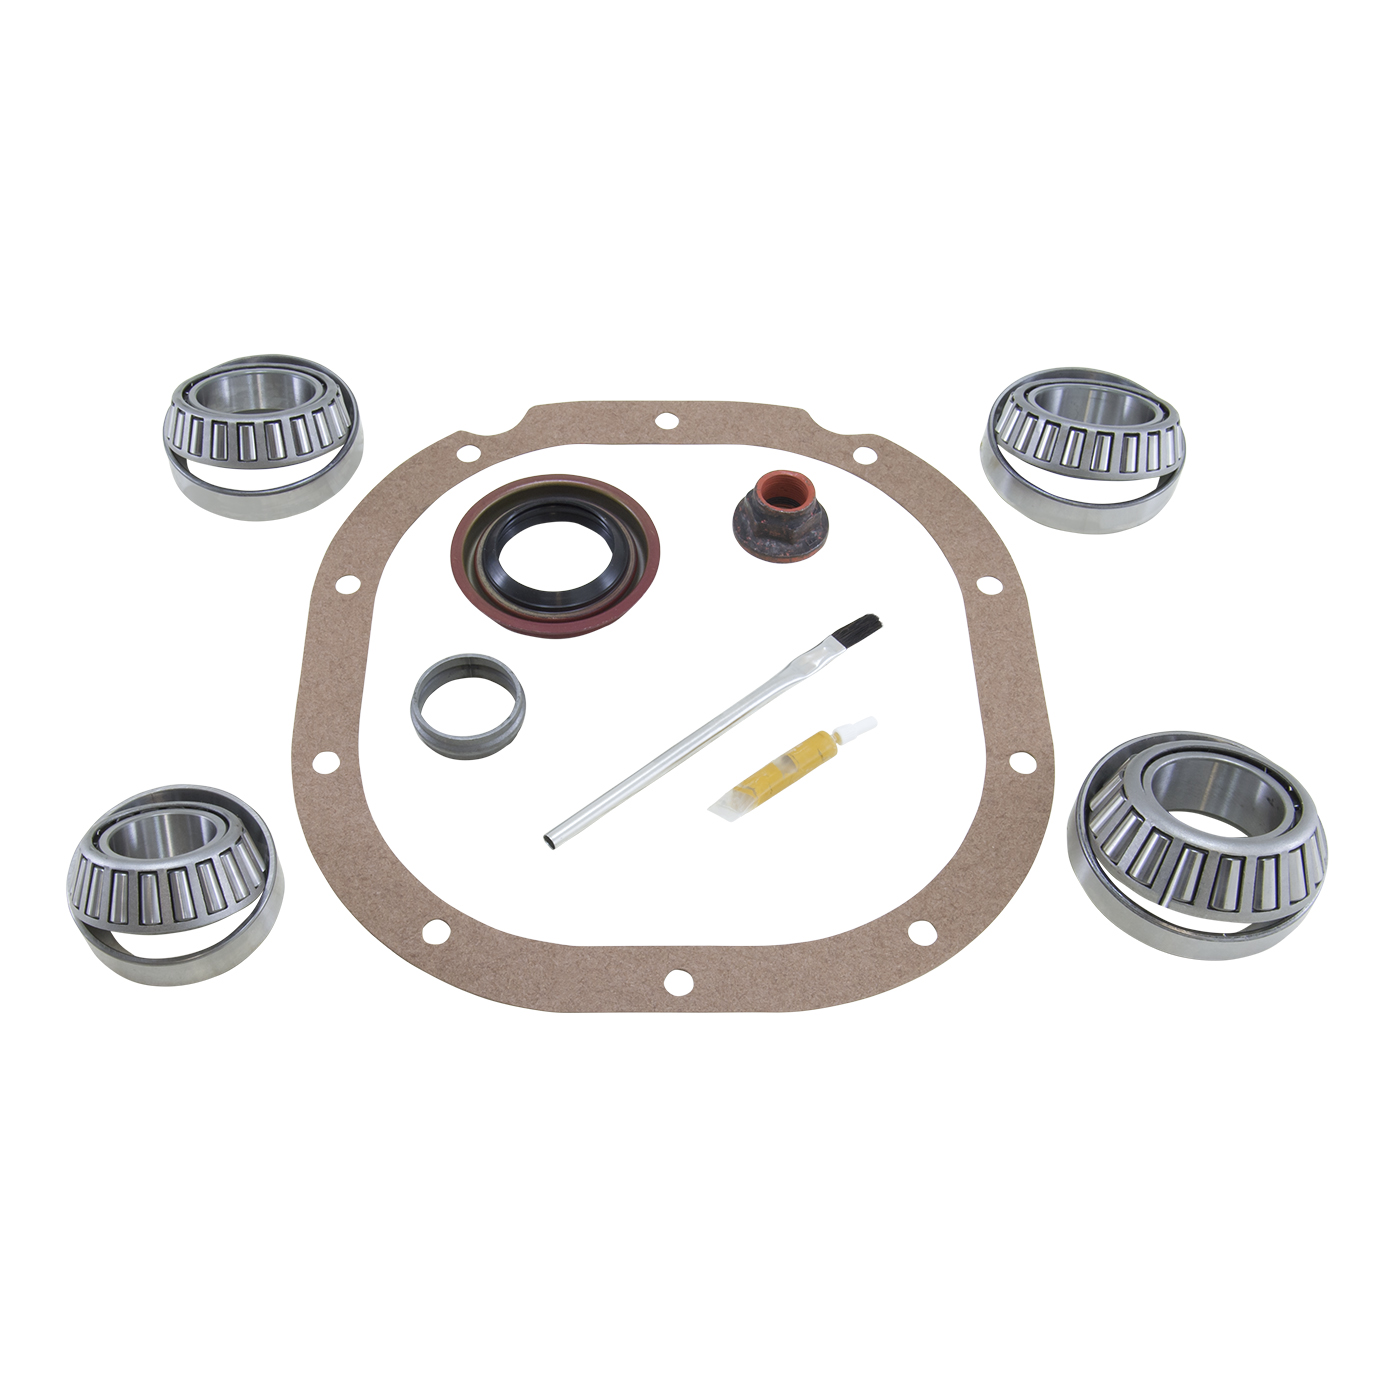 ZBKF8.8-C - USA Standard Bearing kit for '09-'14 F150